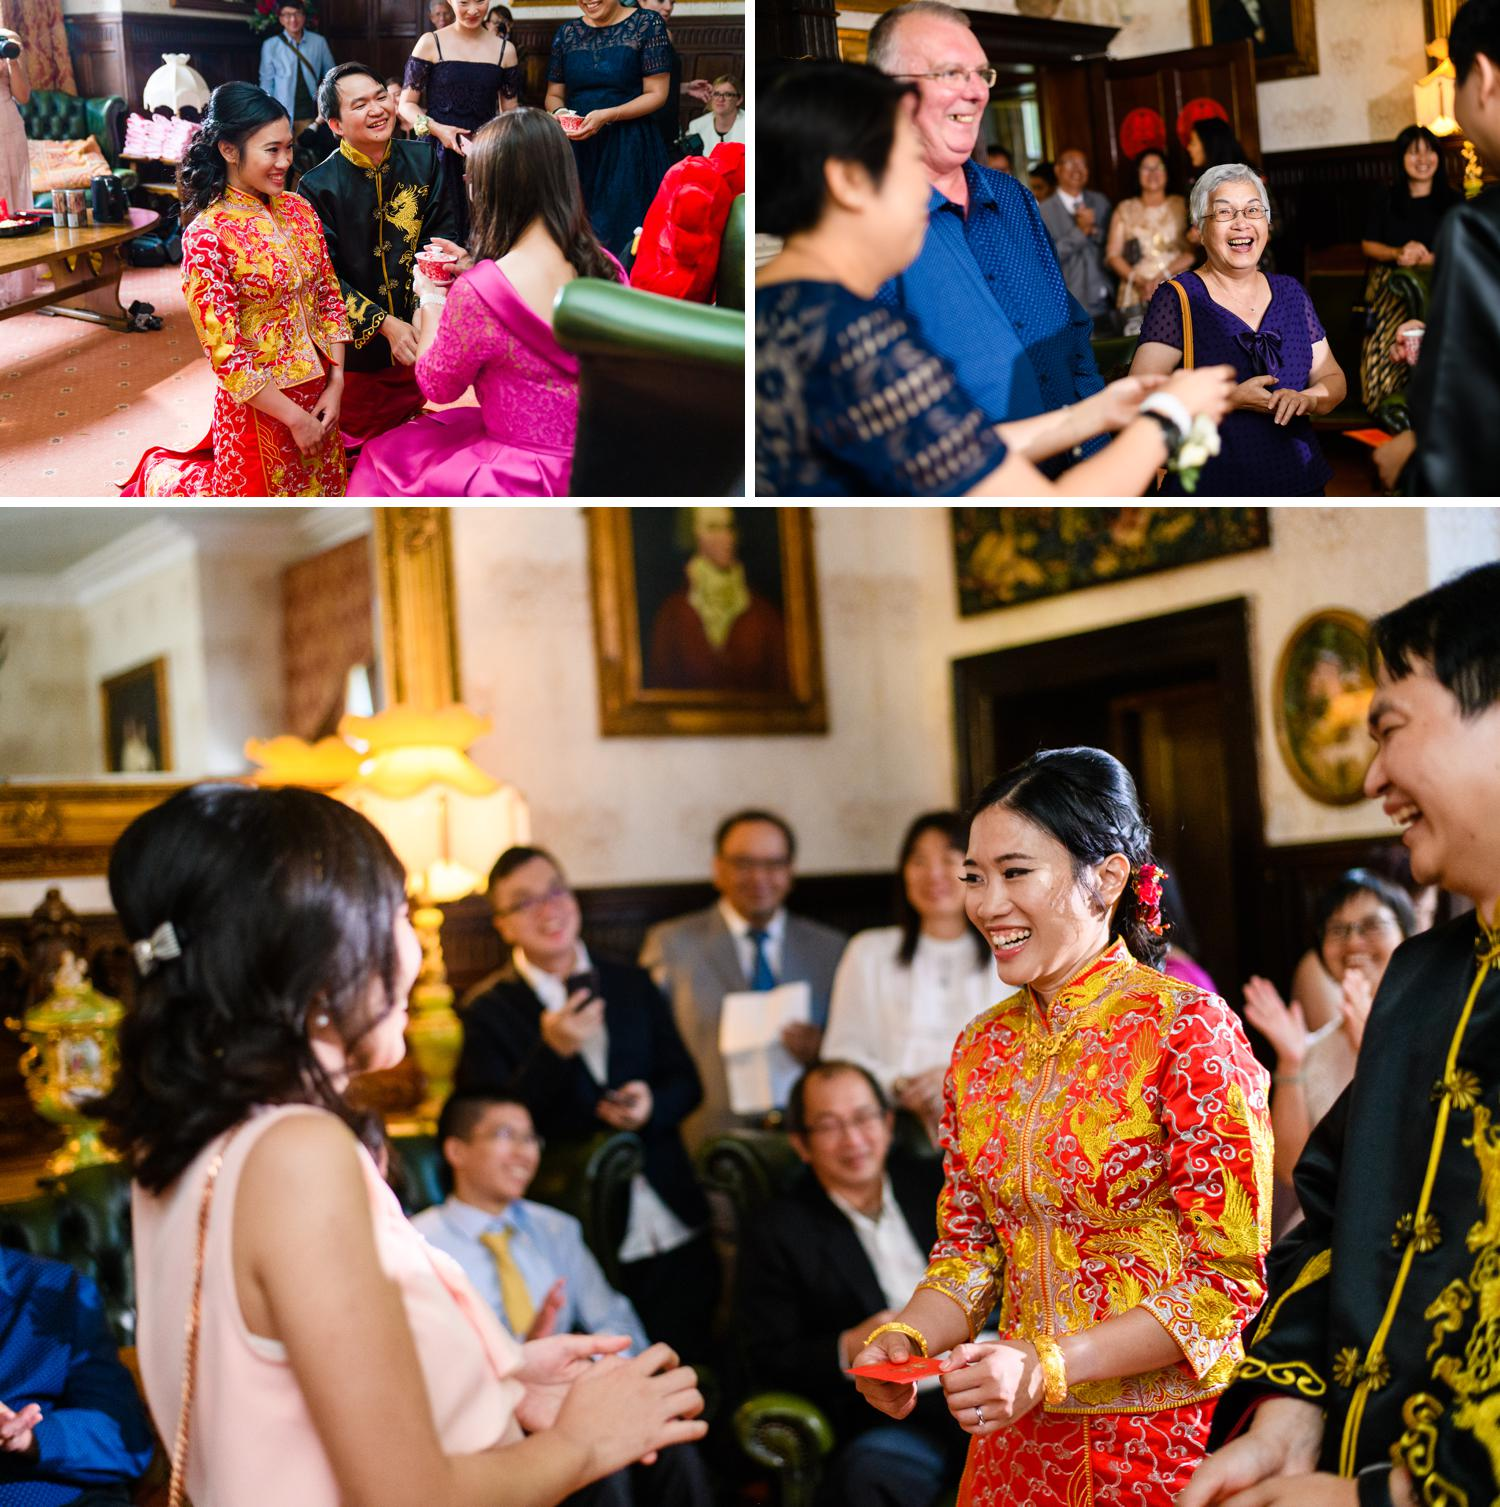 Chinese tea ceremony at Leona & Steven's wedding at Eriviat Hall